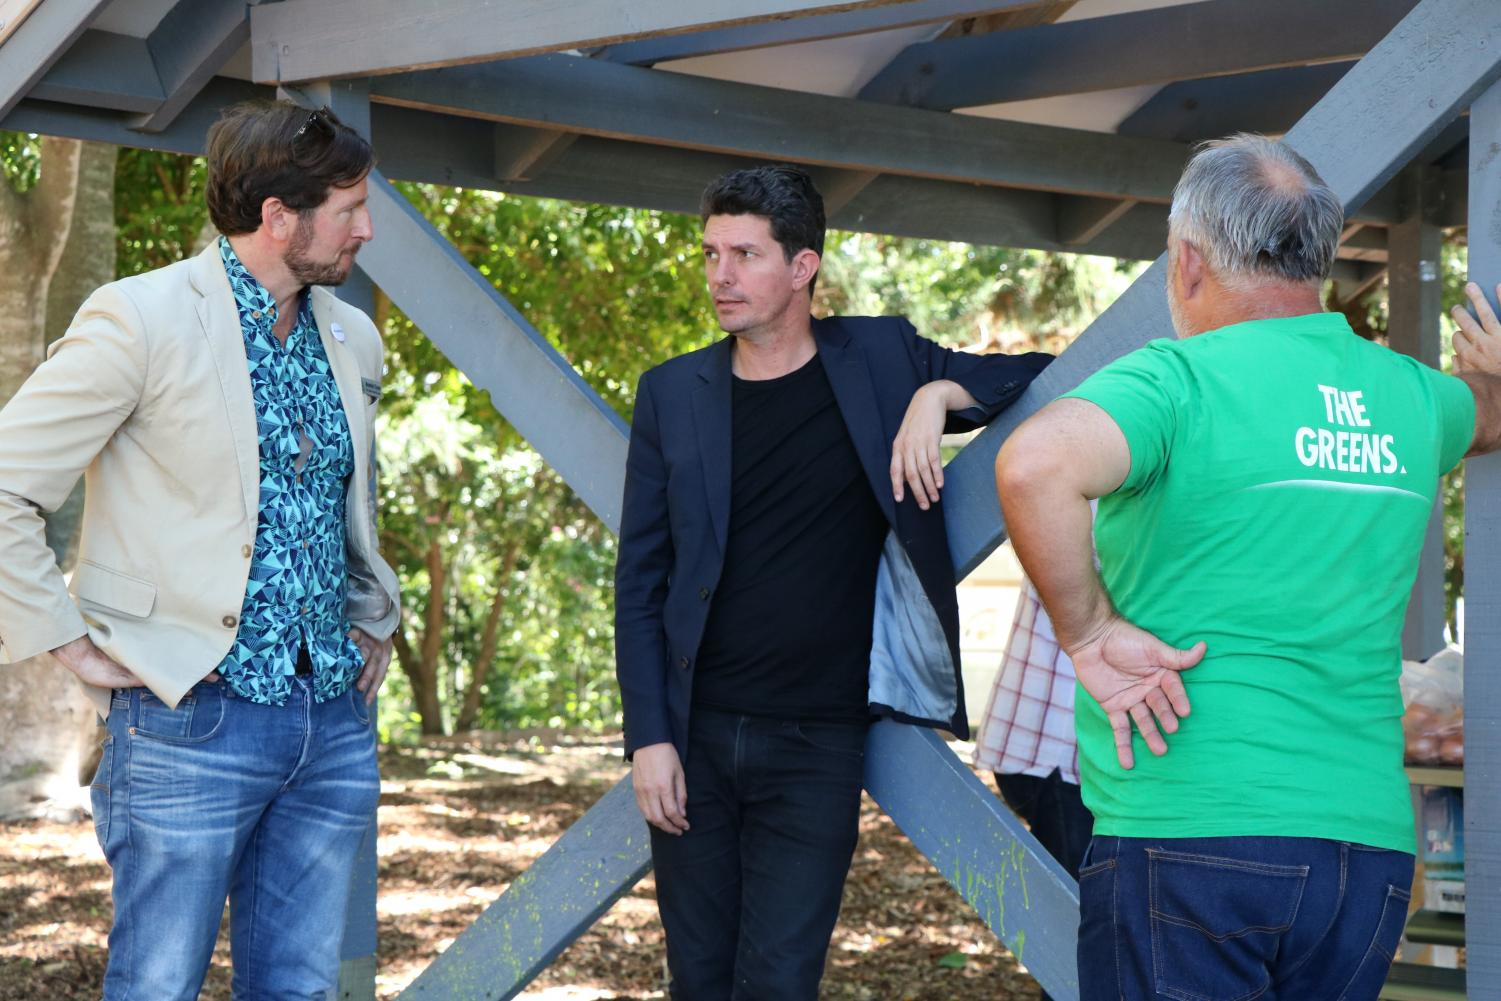 Benedict Coyne and Scott Ludlam at a community picnic for The Greens in Dickson